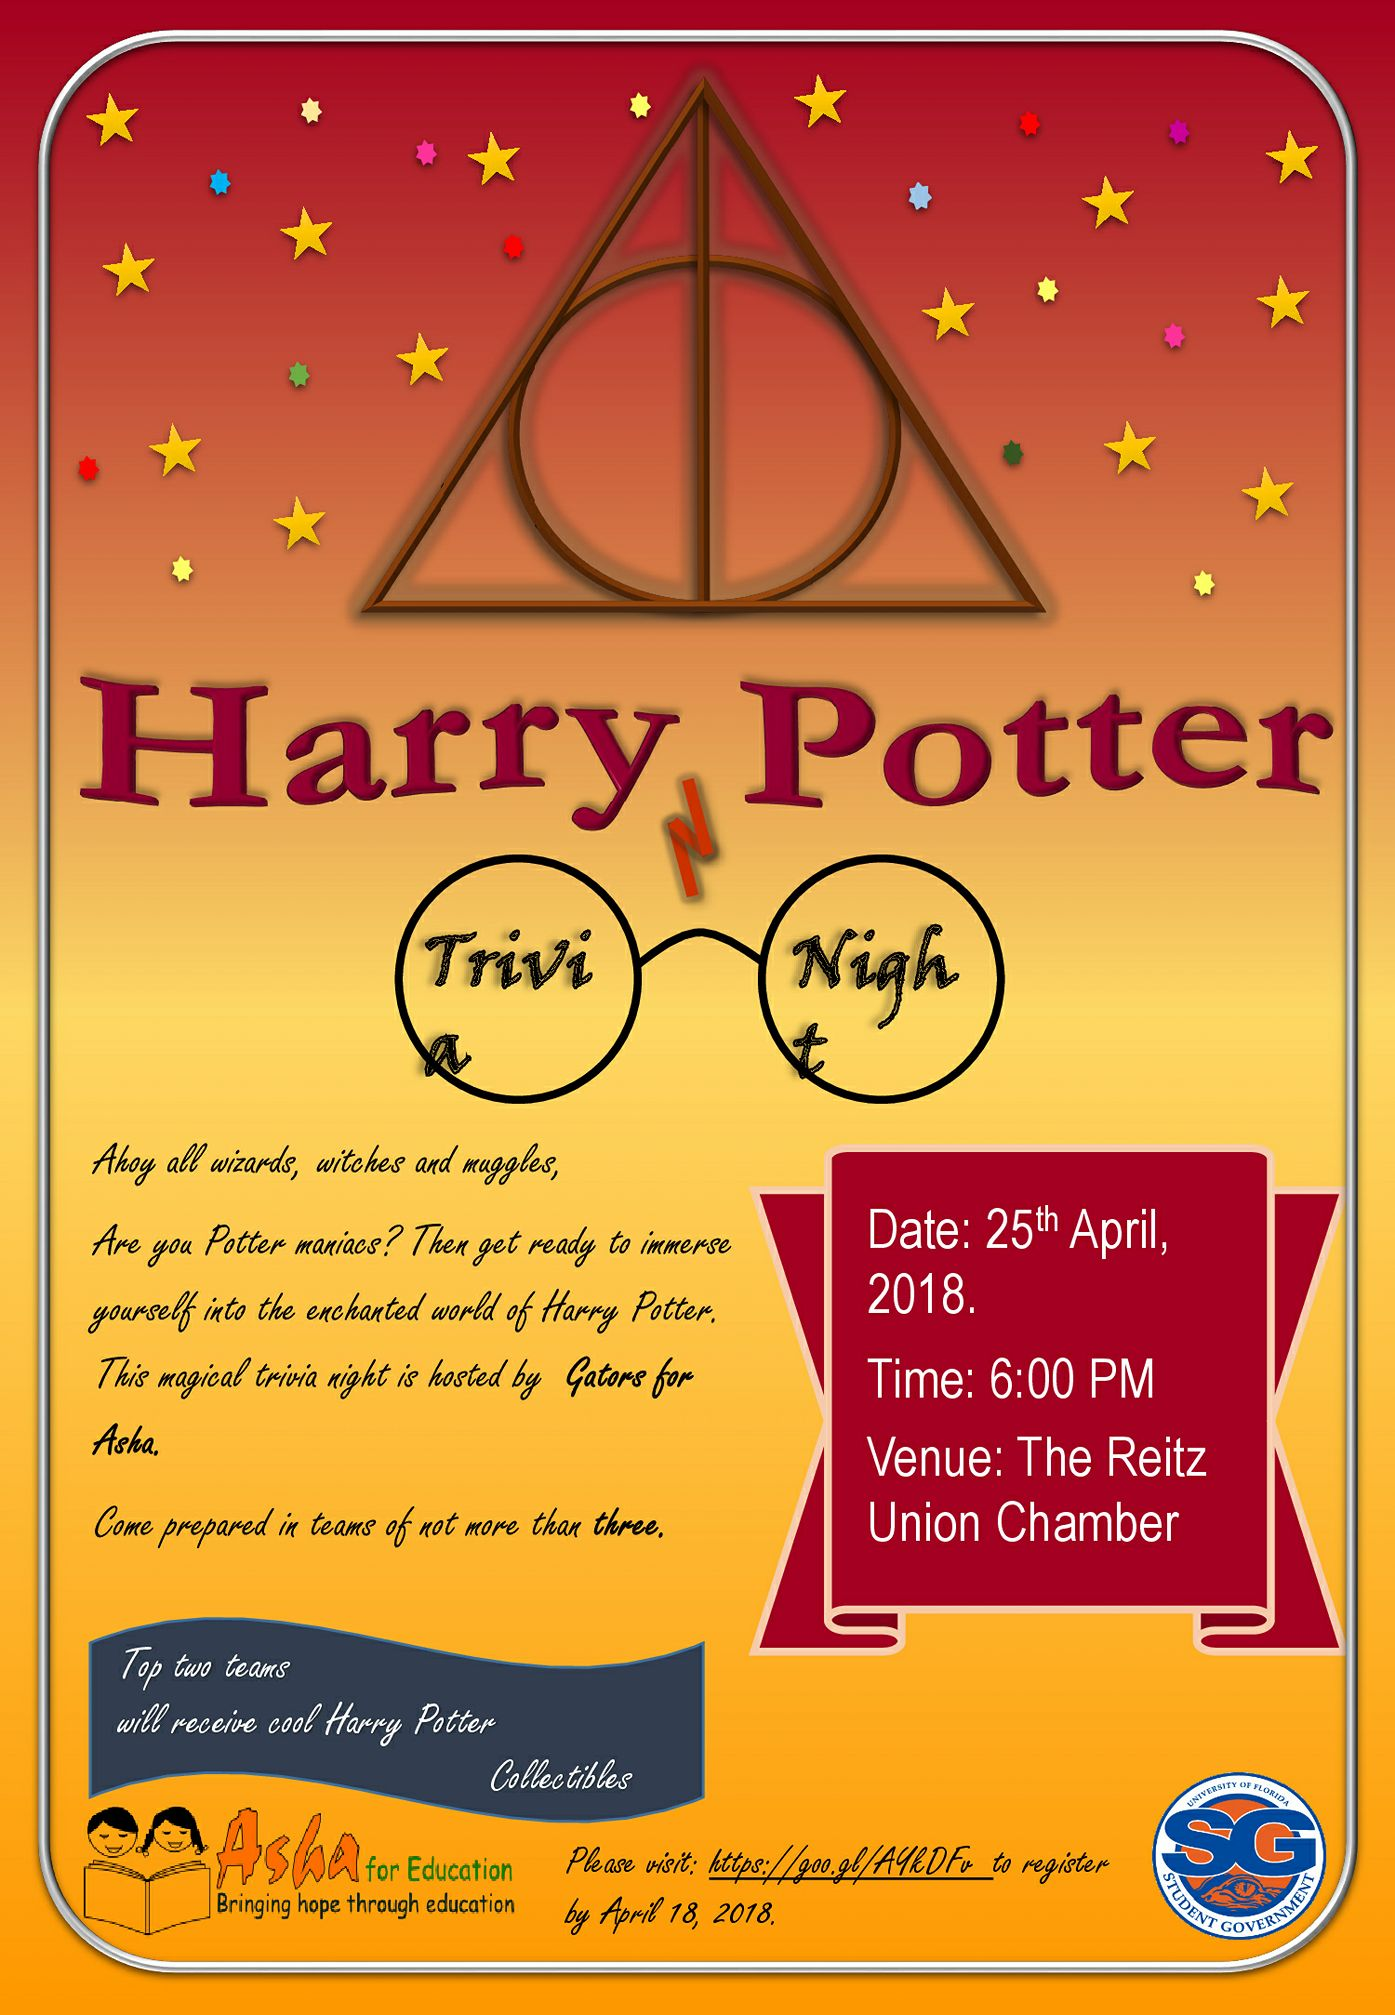 HP trivia night